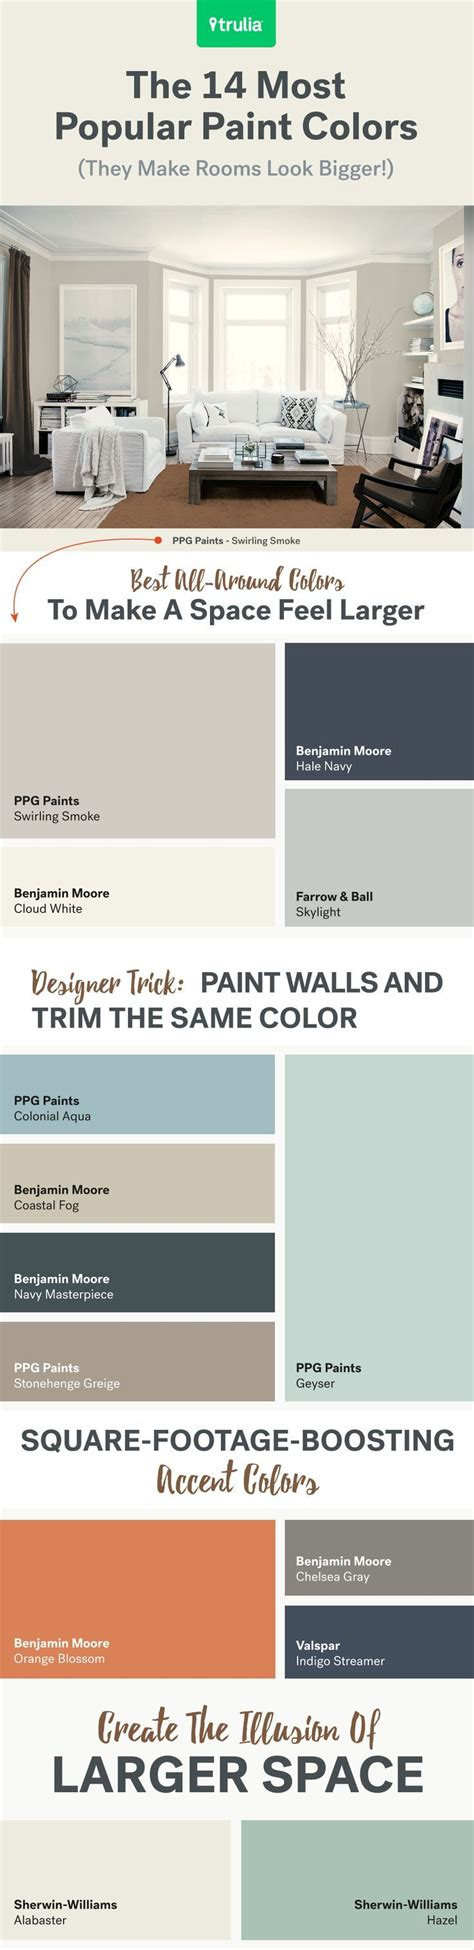 colors to make a room look bigger 25 best ideas about popular paint colors on pinterest